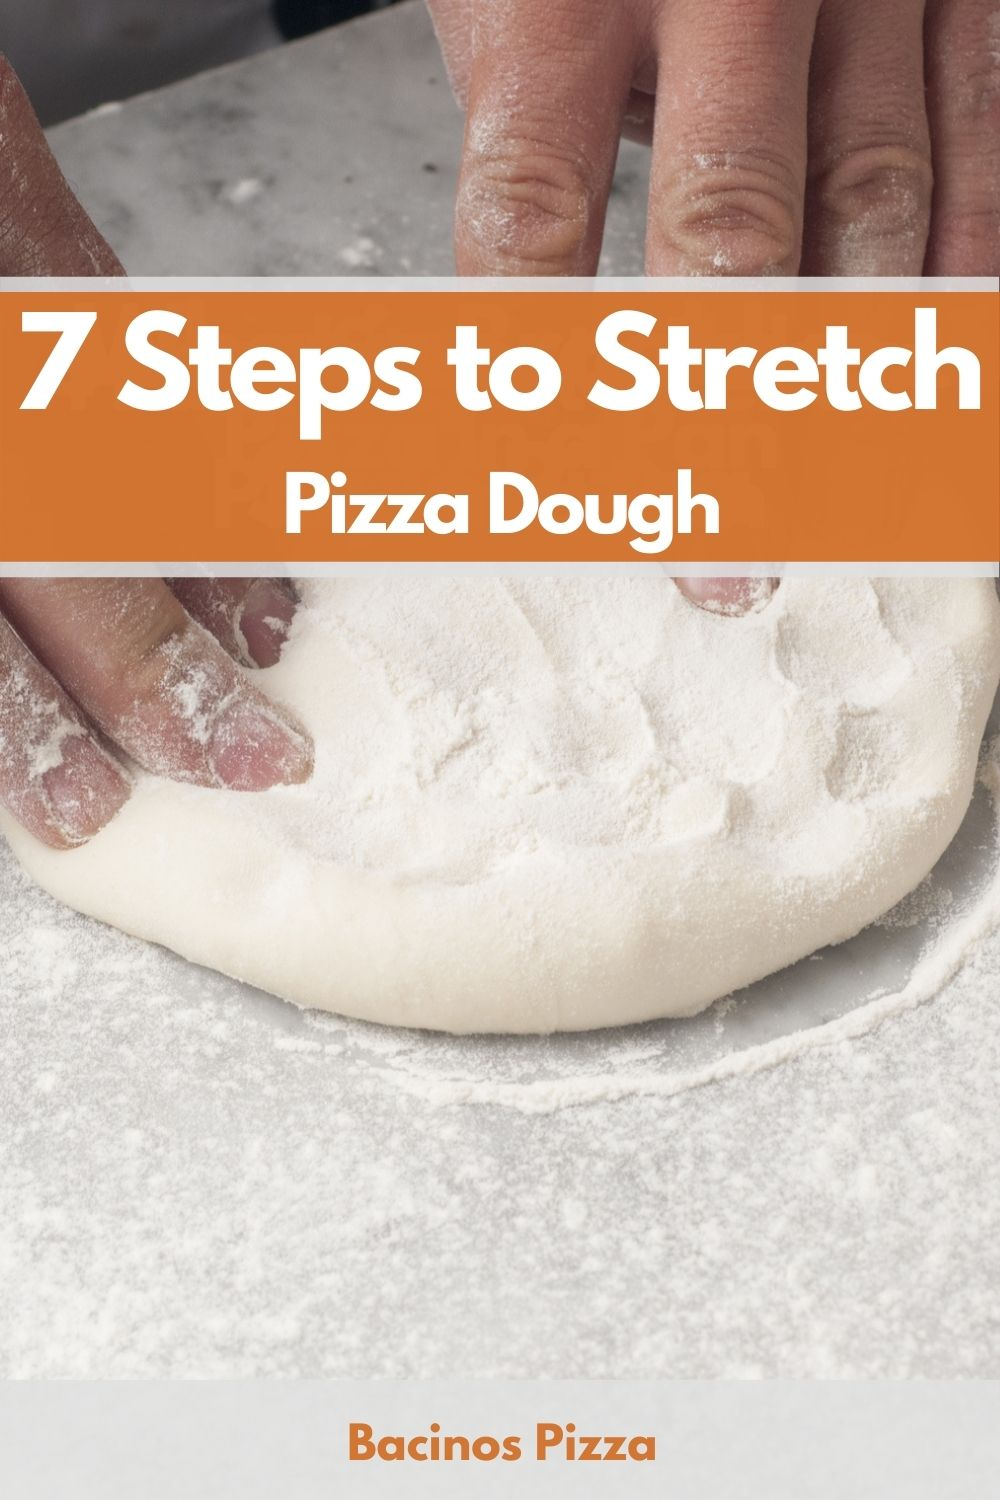 7 Steps to Stretch Pizza Dough pin 2